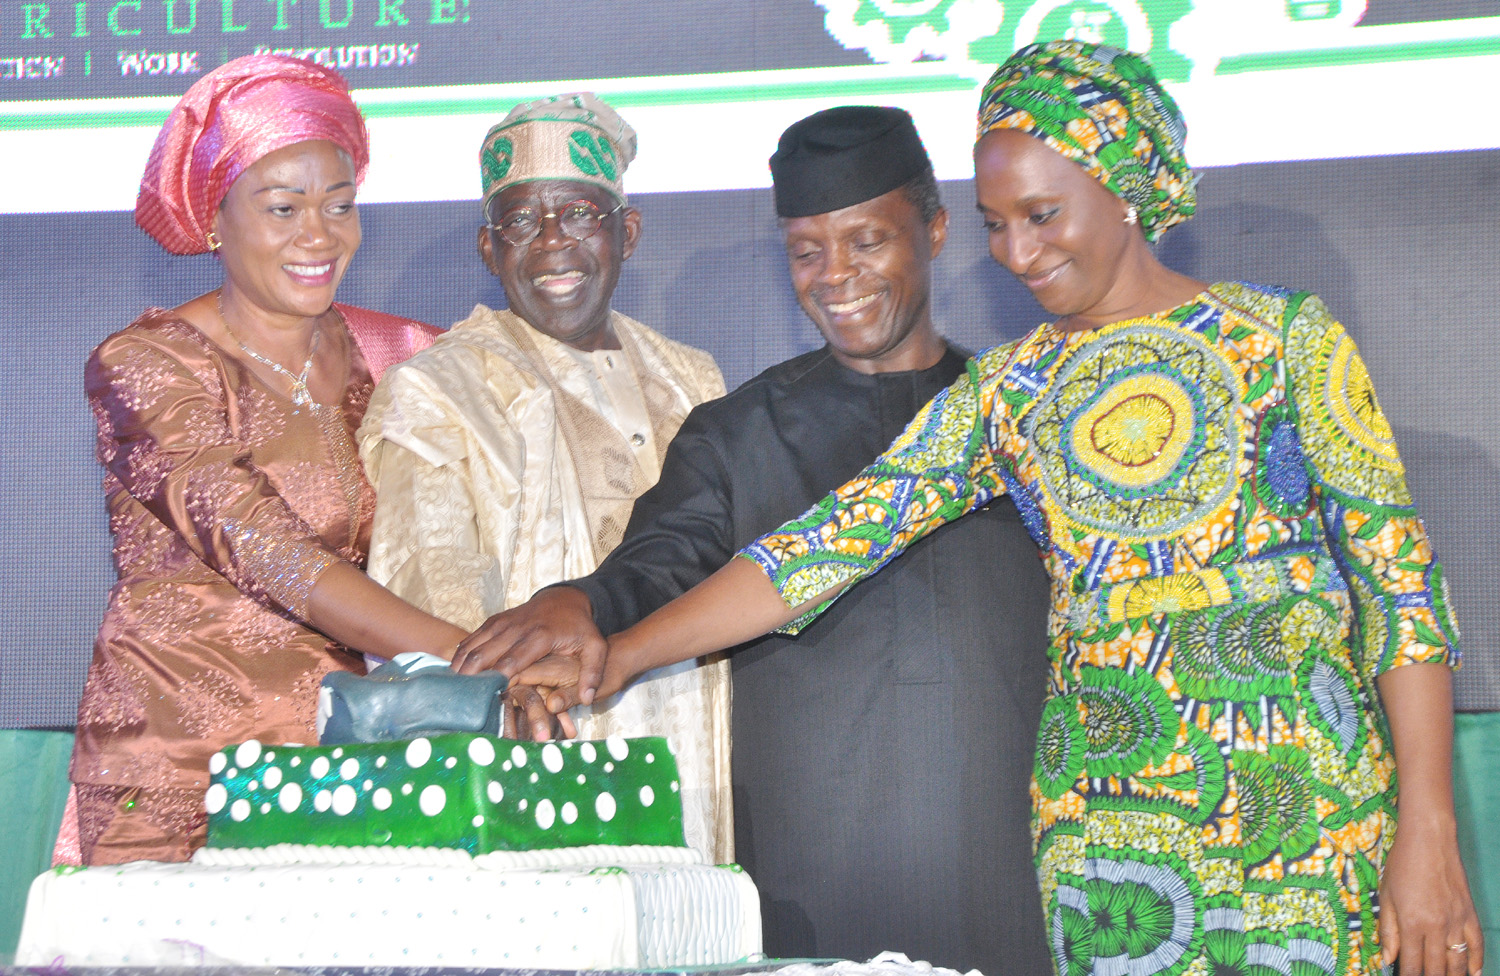 L-R, Sanator Remi Tinubu, Asiwaju Bola Ahmed Tinubu, Vice President Yemi Osinbanjo and wife of the vice president Mrs. Dolapo Osinbanjo cutting the cake to mark the 8th Bola Tinubu Colloquium to mark the 64th birthday of Asiwaju Bola Ahmed Tinubu